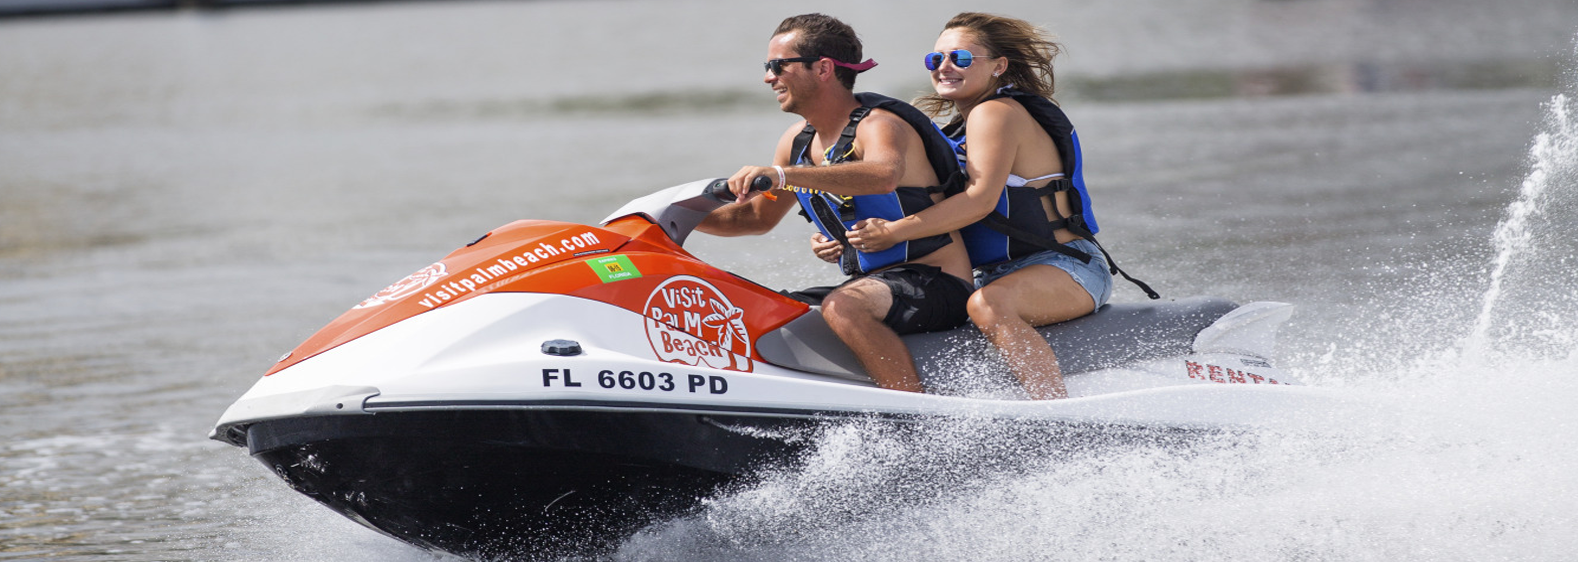 Jet Ski Rentals - What you need to Know - visitpalmbeach com